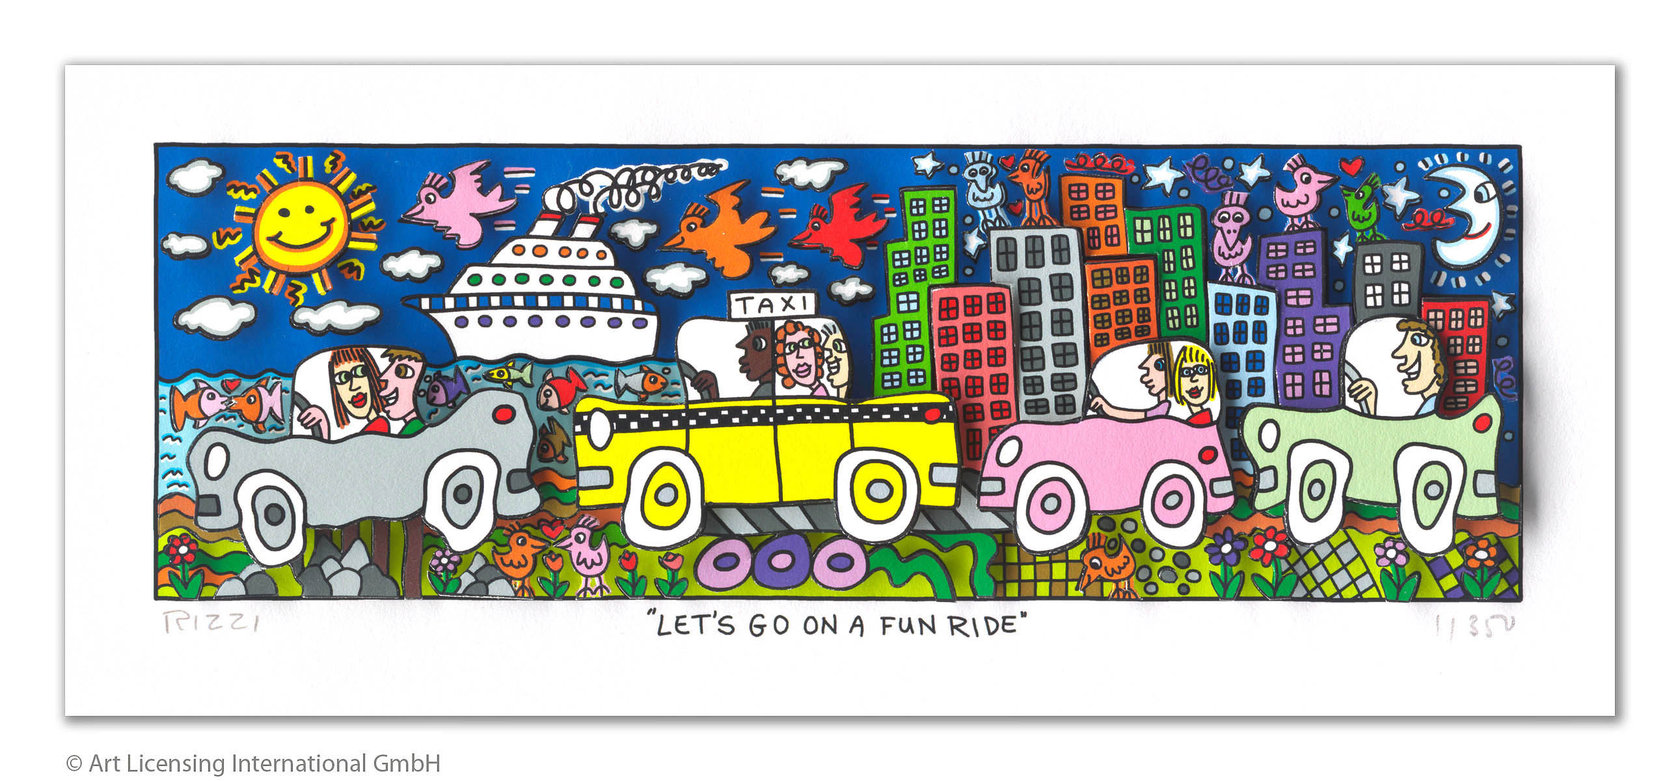 James Rizzi - LET'S GO ON A FUN RIDE